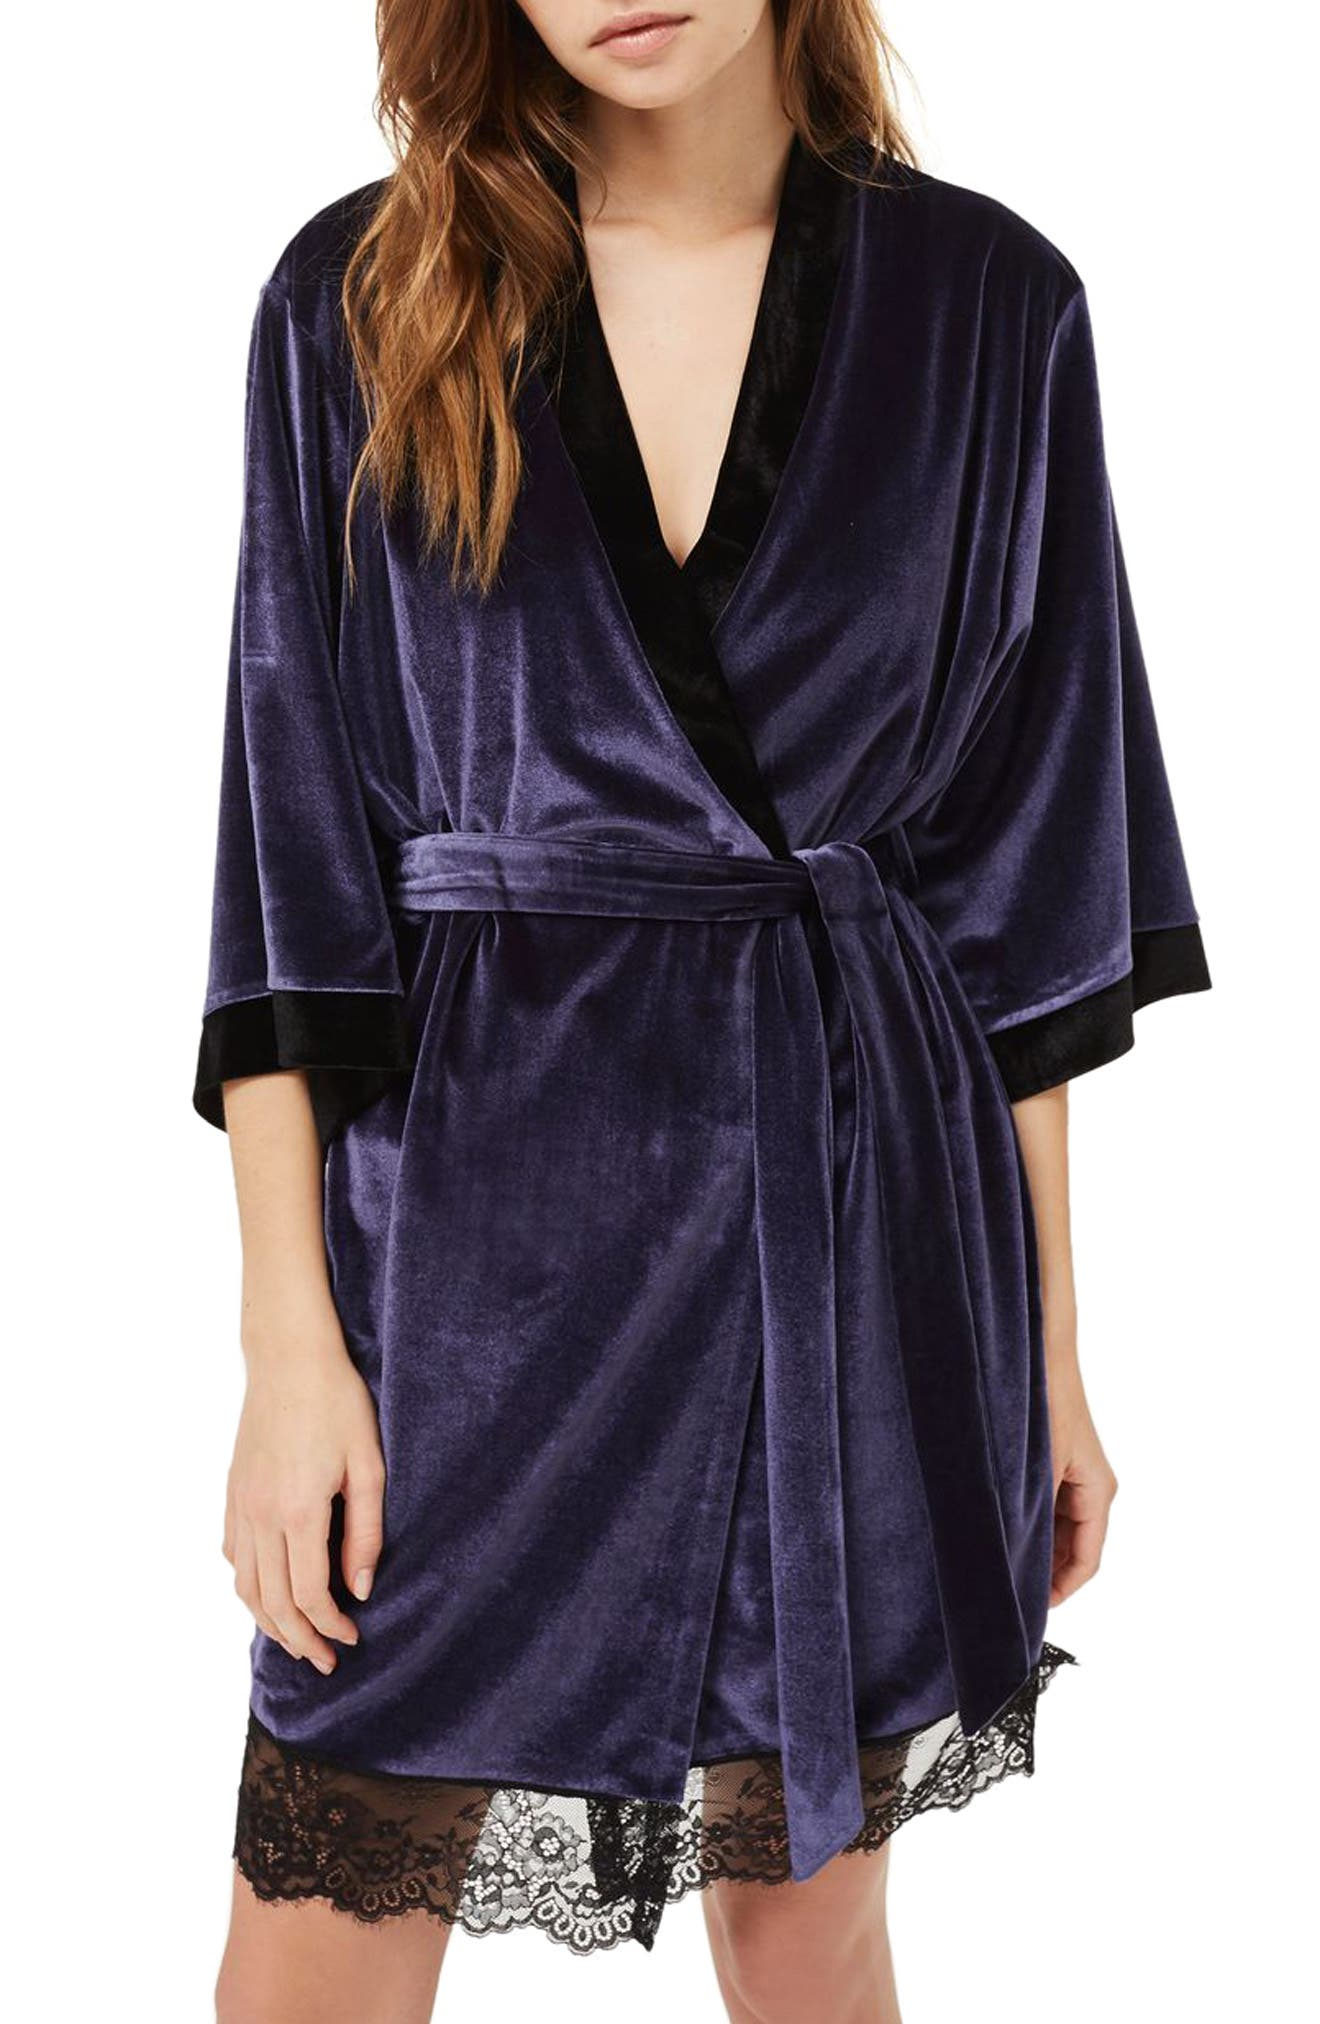 Nocturne Lace and Velvet Robe,                             Main thumbnail 1, color,                             410